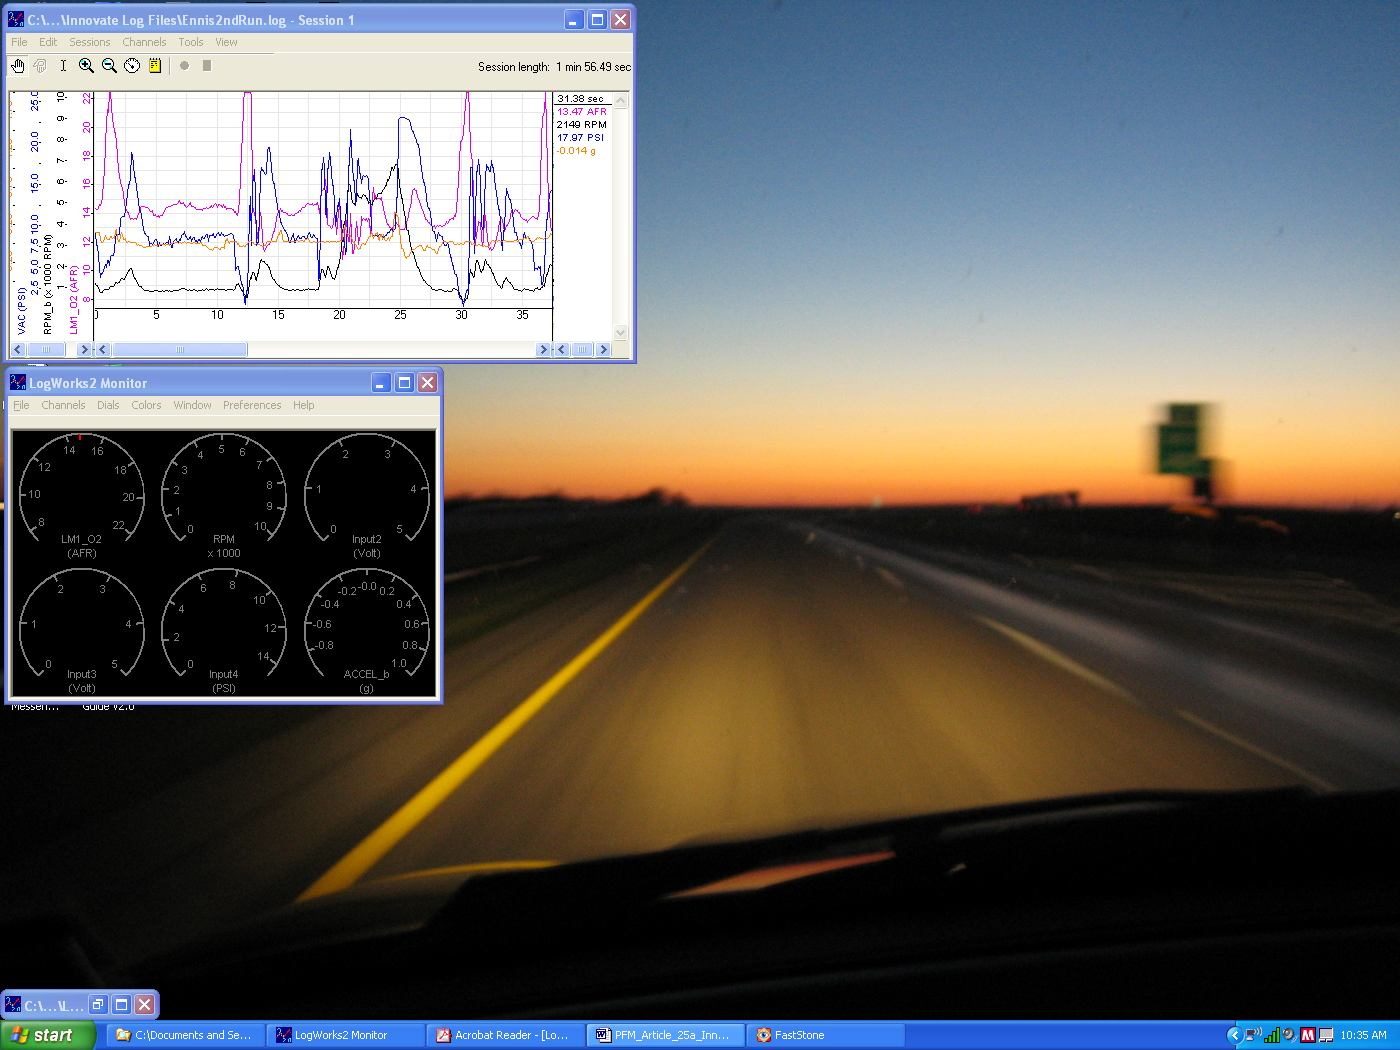 Wideband Efi Tuning Wide Band Fuel Mixture Display Similar To The Screen Shot Below You Can Toggle Between Multiple Sessions Using Session Drop Down Menu Of That New Chart